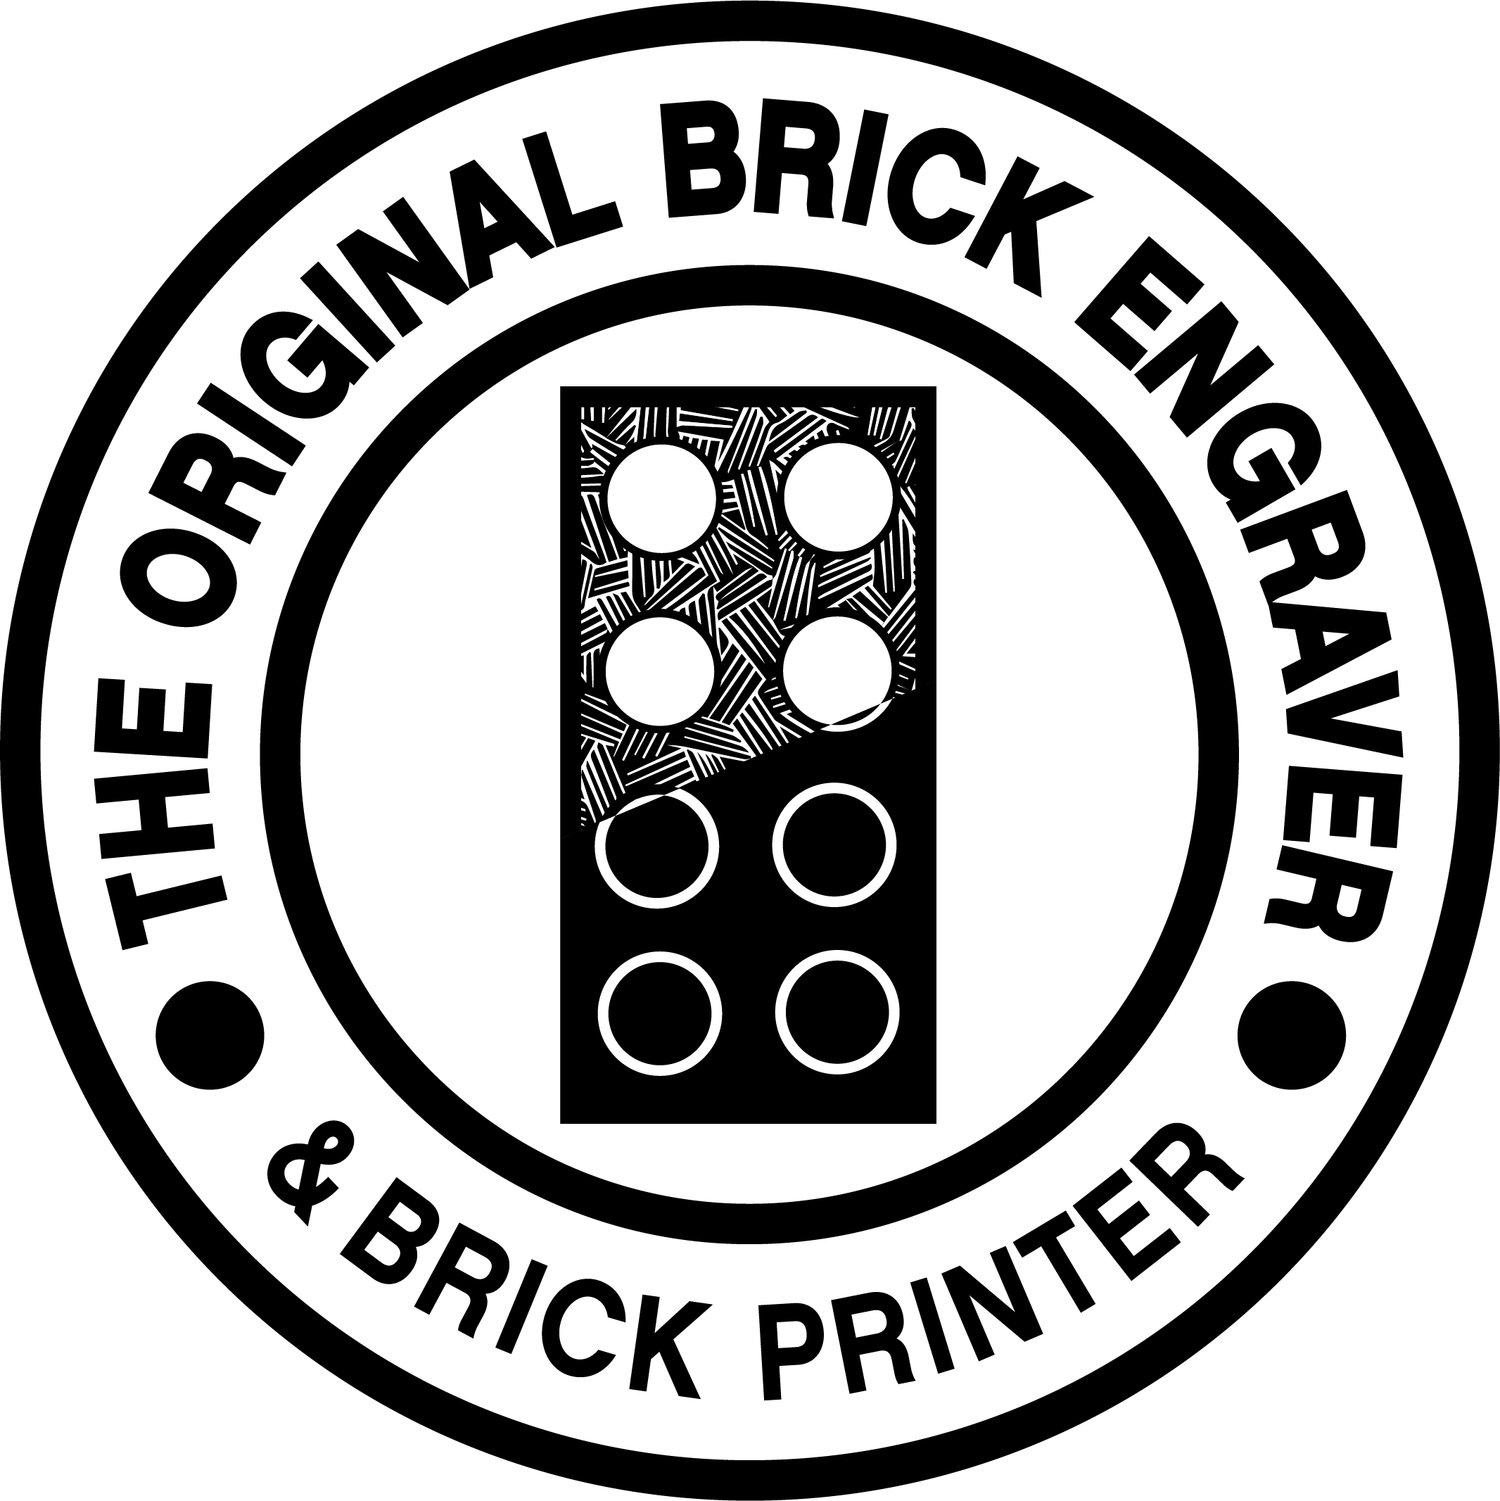 The Original BrickEngraver/BrickPrinter